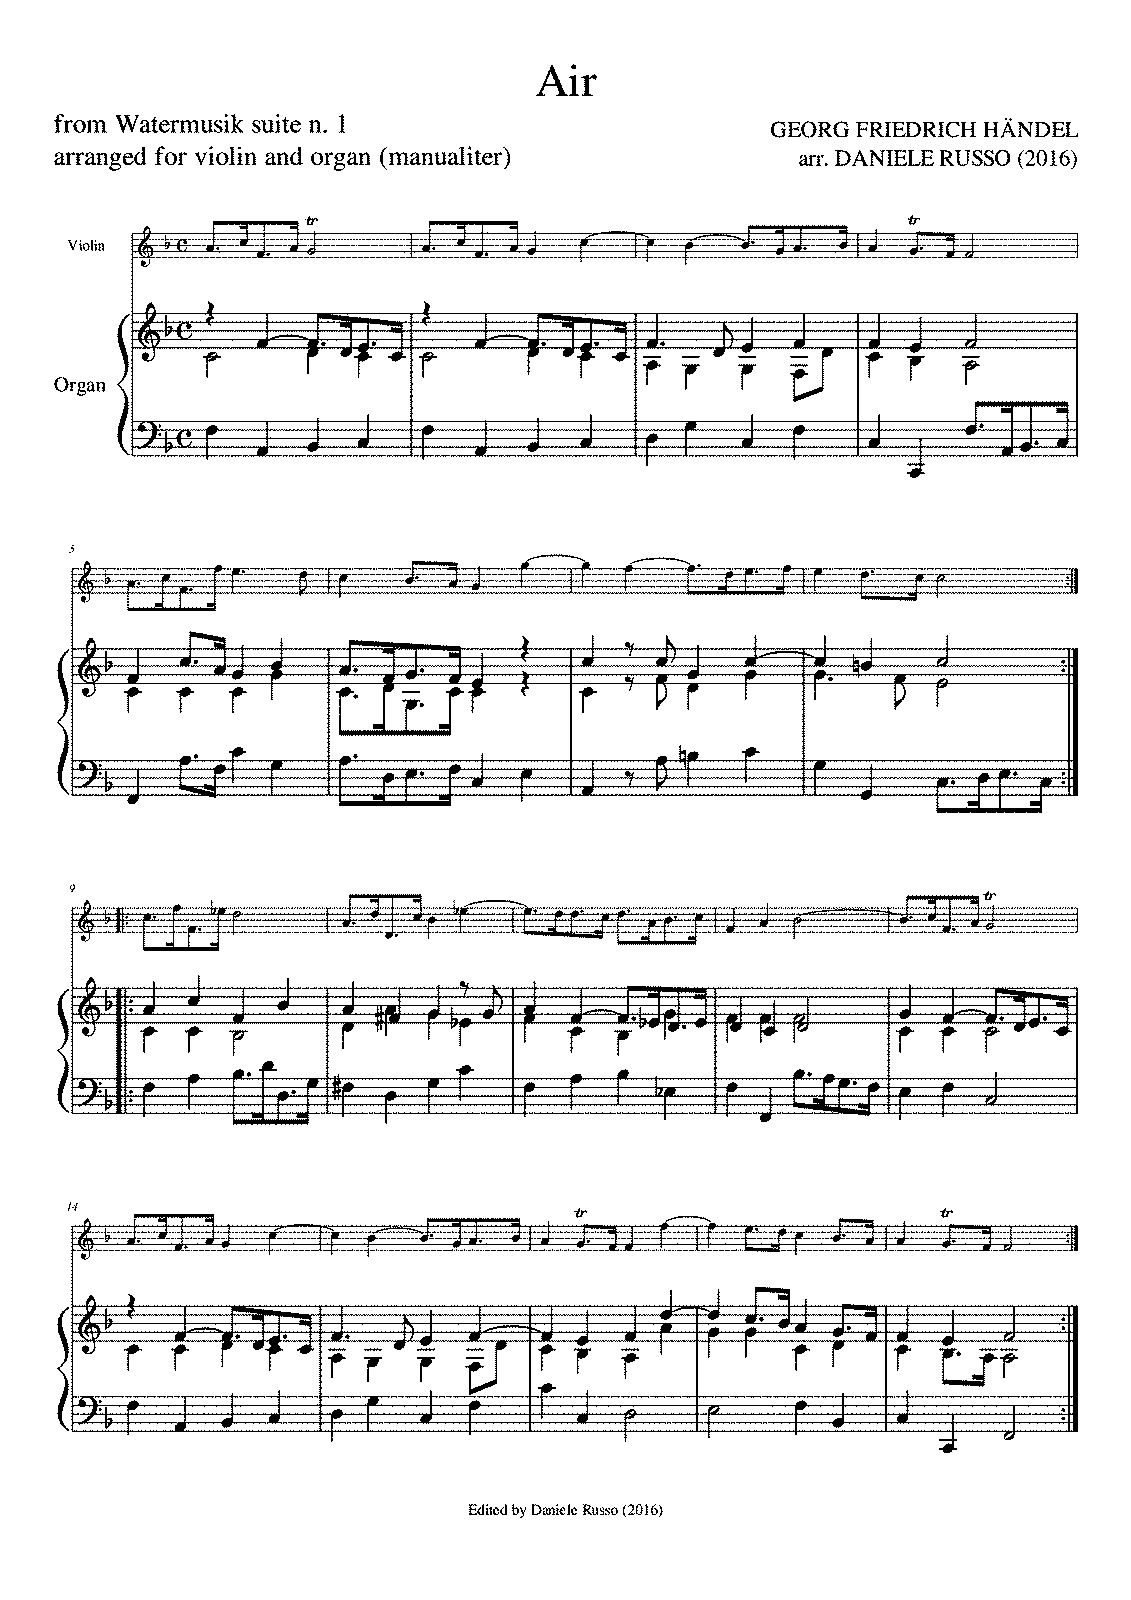 PMLP11283-Handel - Watermusik suite 1 - Air.pdf